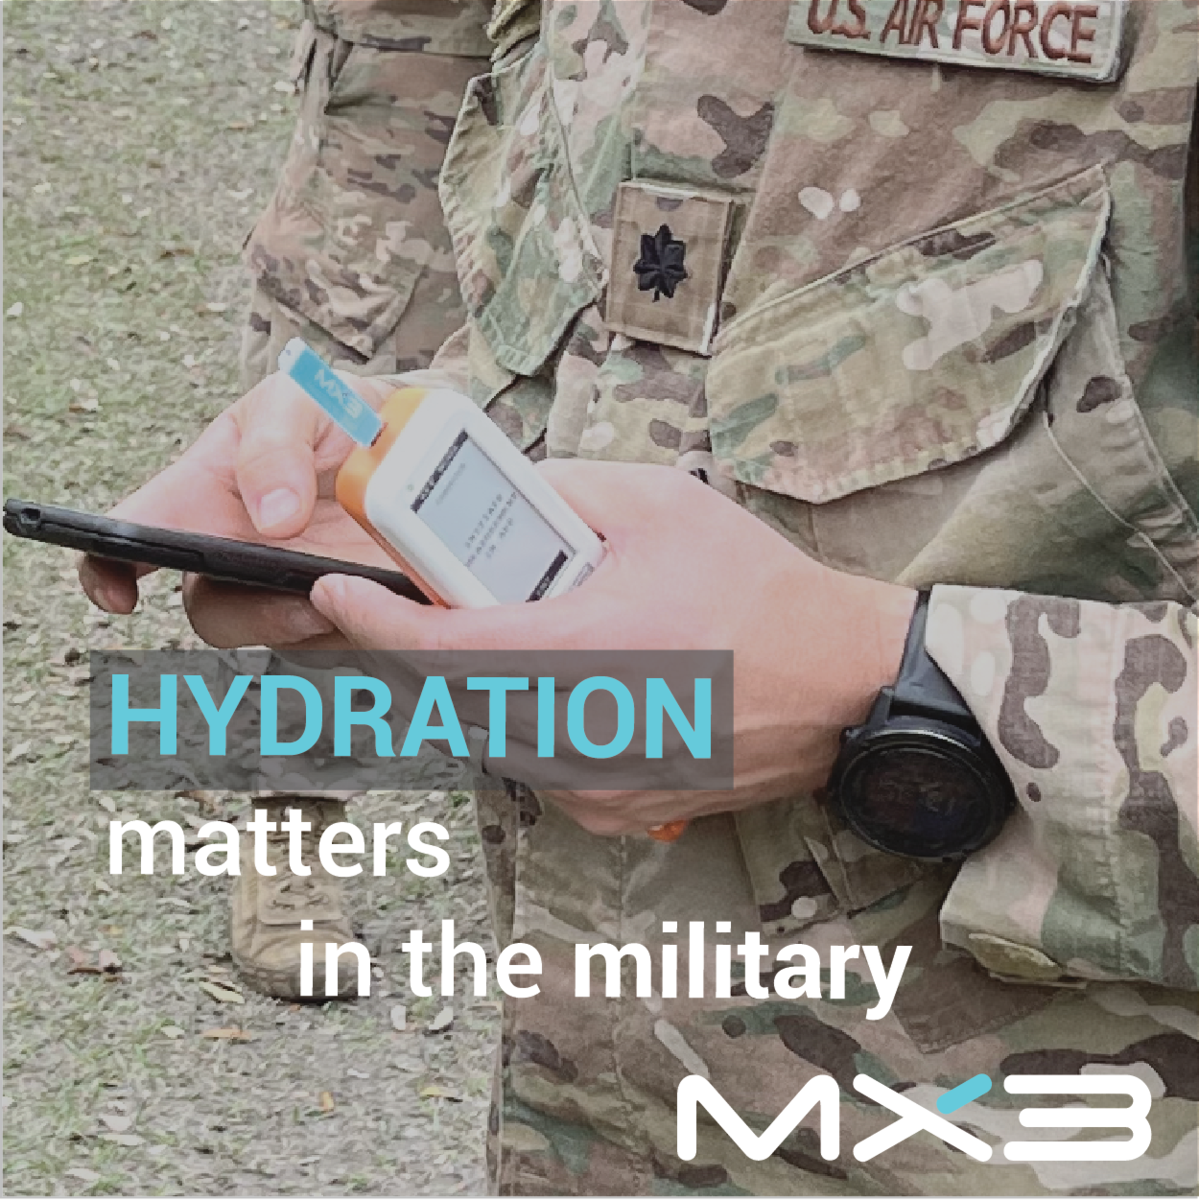 Hydration matters in the military